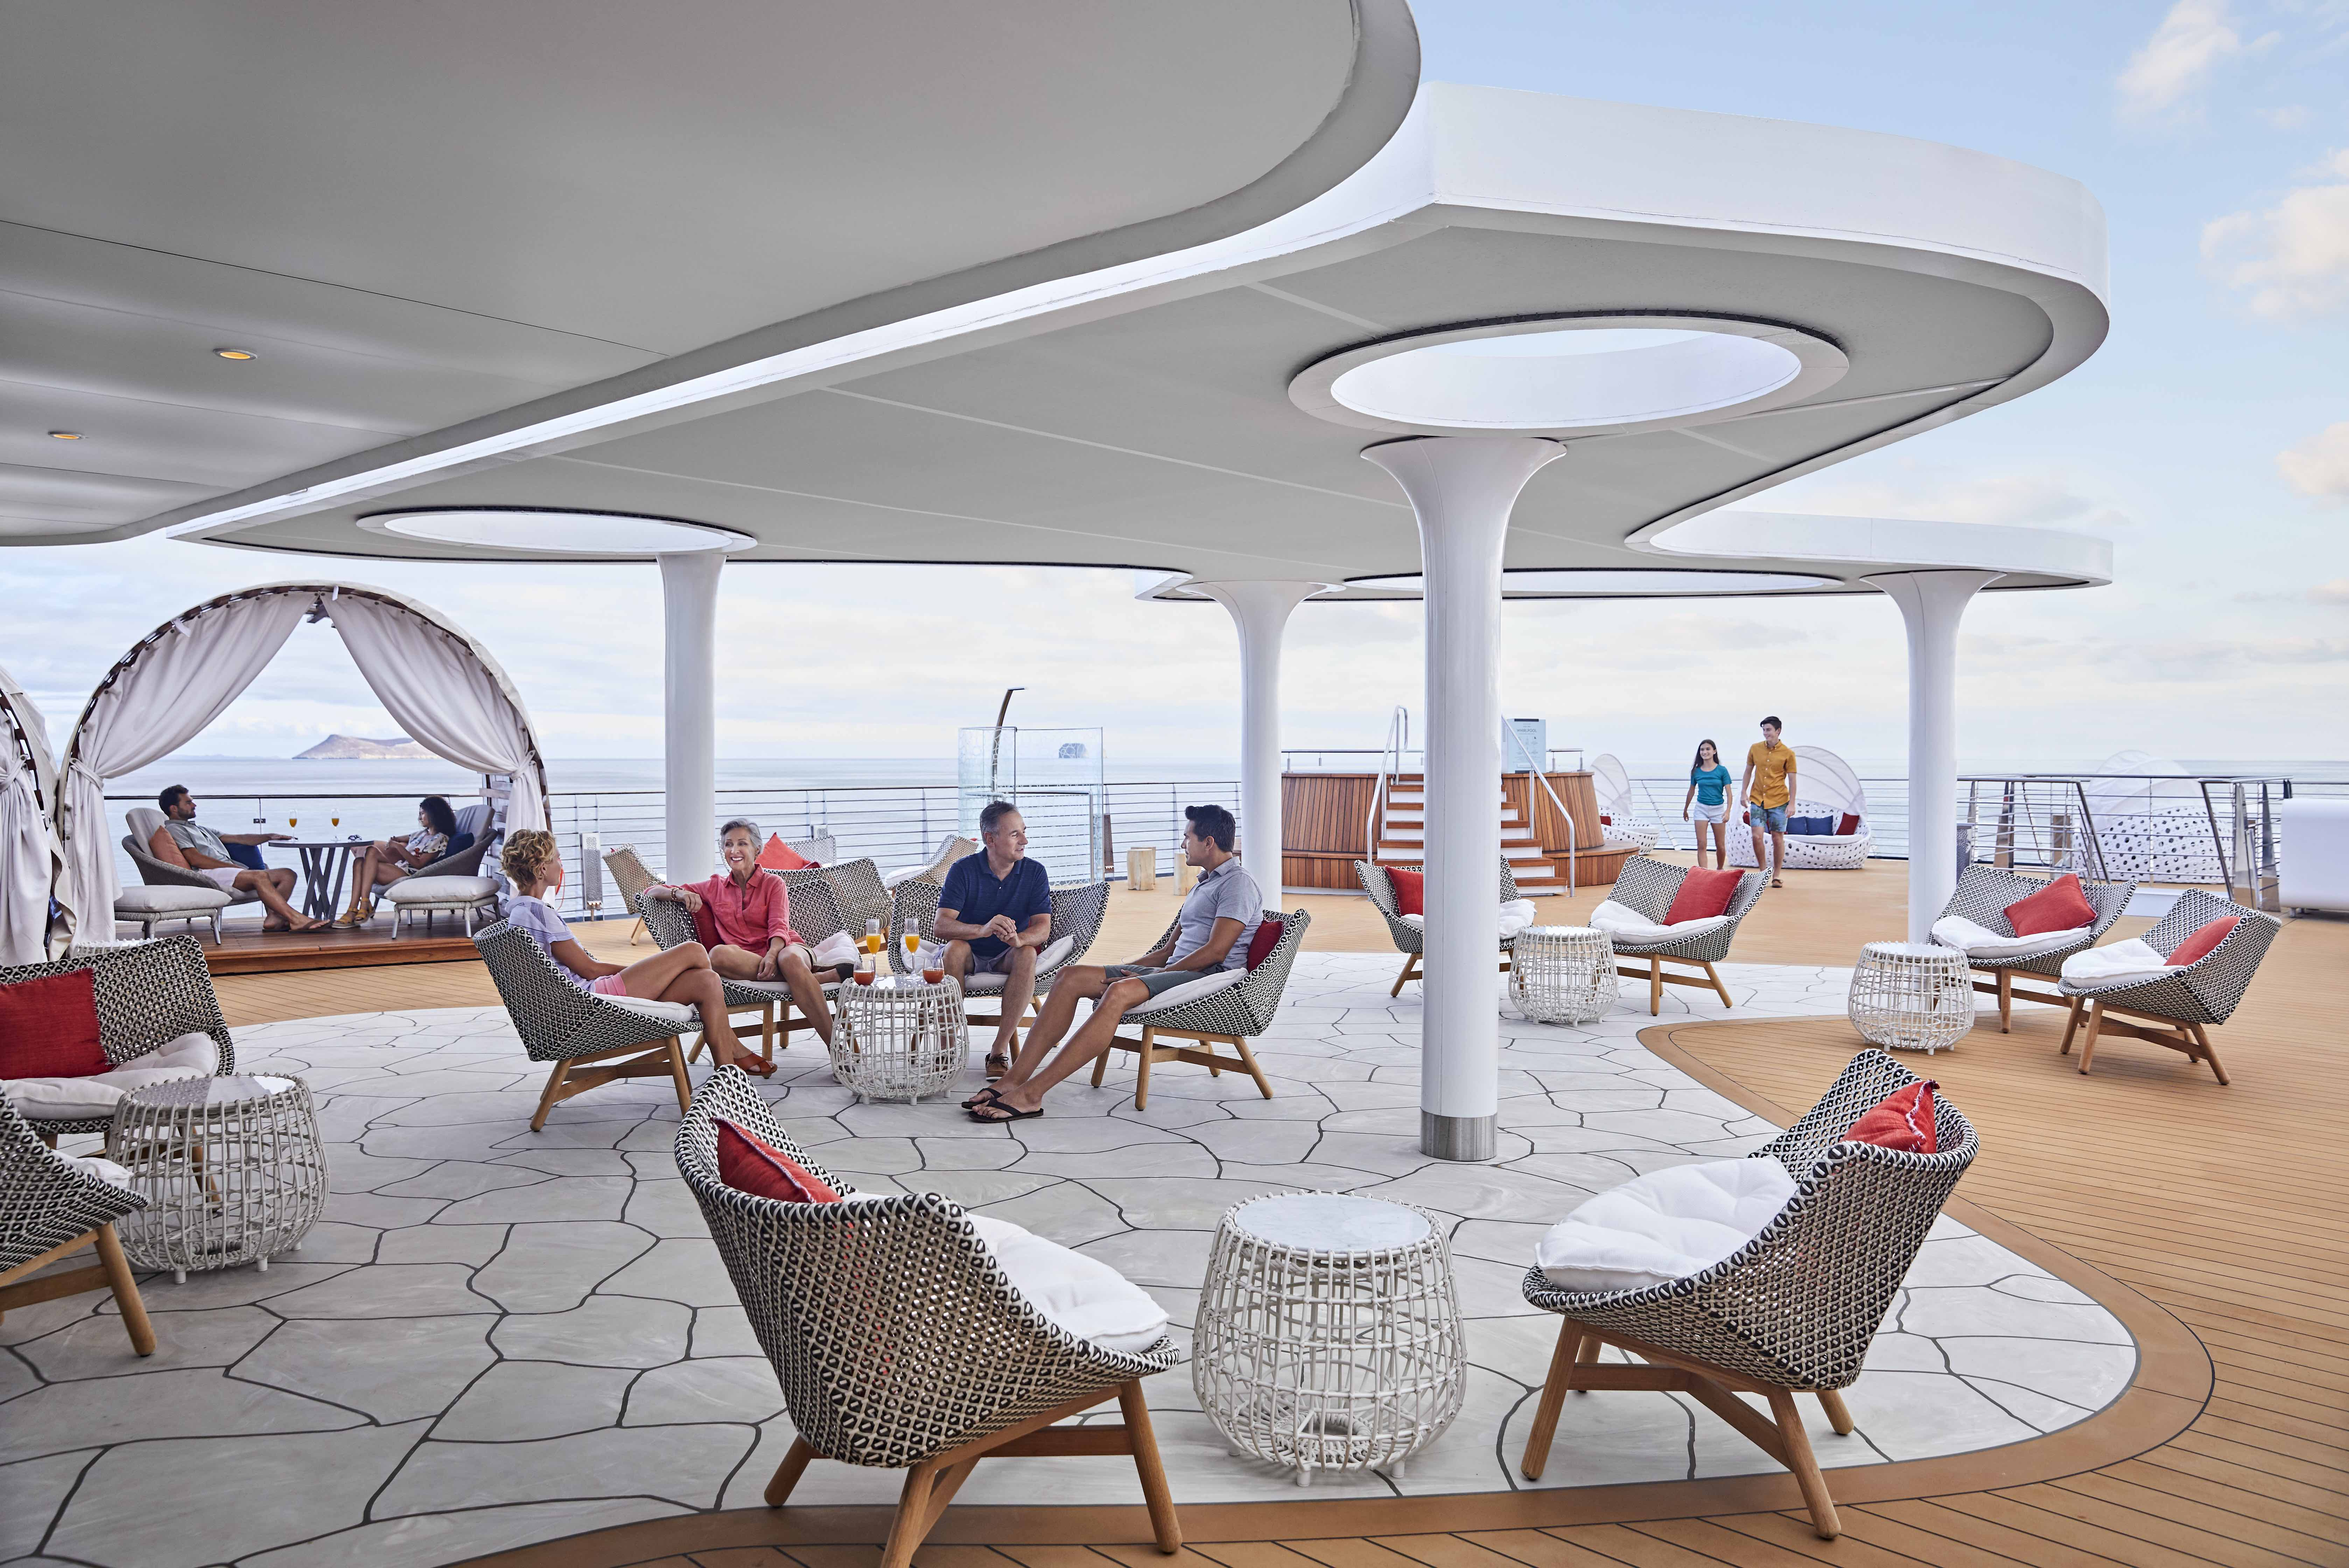 Celebrity Flora, FL, Galapagos Islands, all suite luxury mega yacht, The Vista, lounge, outdoor, jacuzzi, cabana, chairs, family, couples